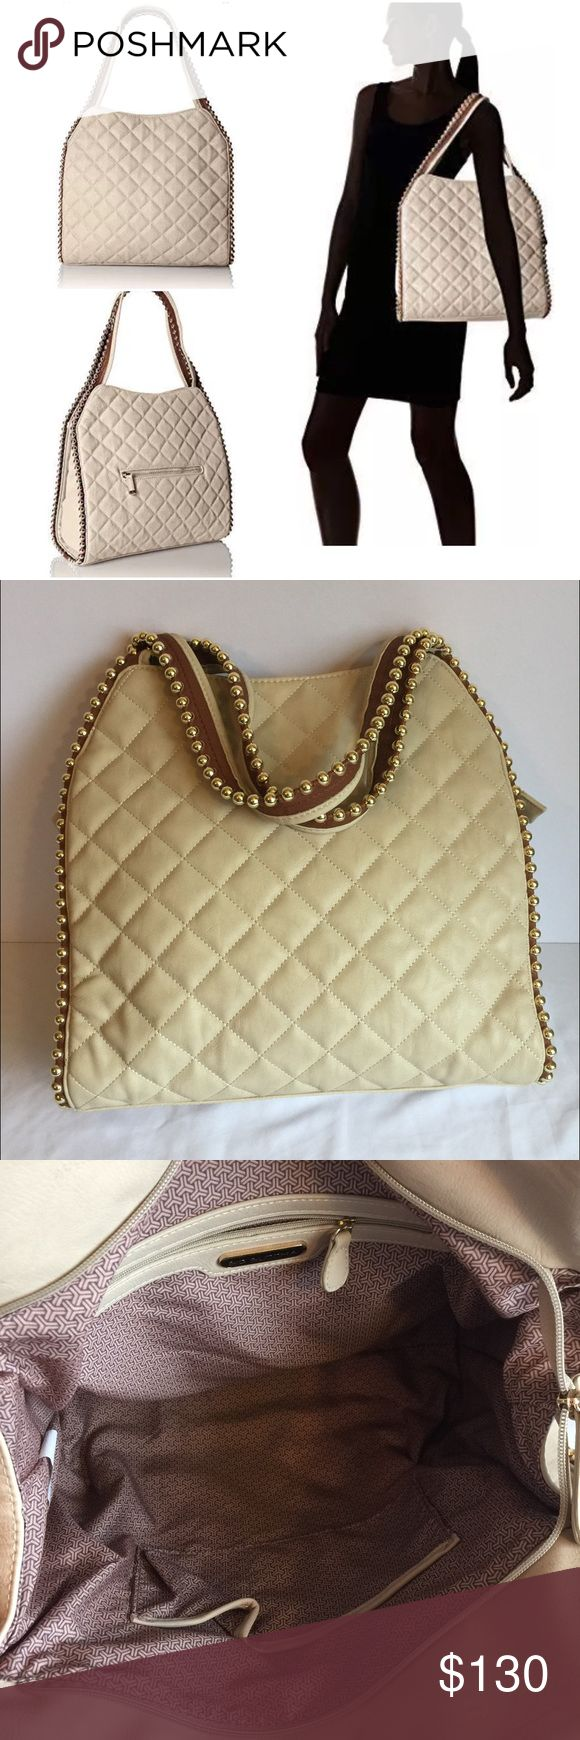 """New Big Buddha Georgie studded XL cream tote bag Polyvinyl Chloride  fabric lining  Zipper closure  Quilted ball tote  Color: cream 15"""" L x 13"""" H x 6"""" W  Condition: New with tags!  Comes from a smoke free home  Stock #: AMR10-204 Big Buddha Bags Shoulder Bags"""